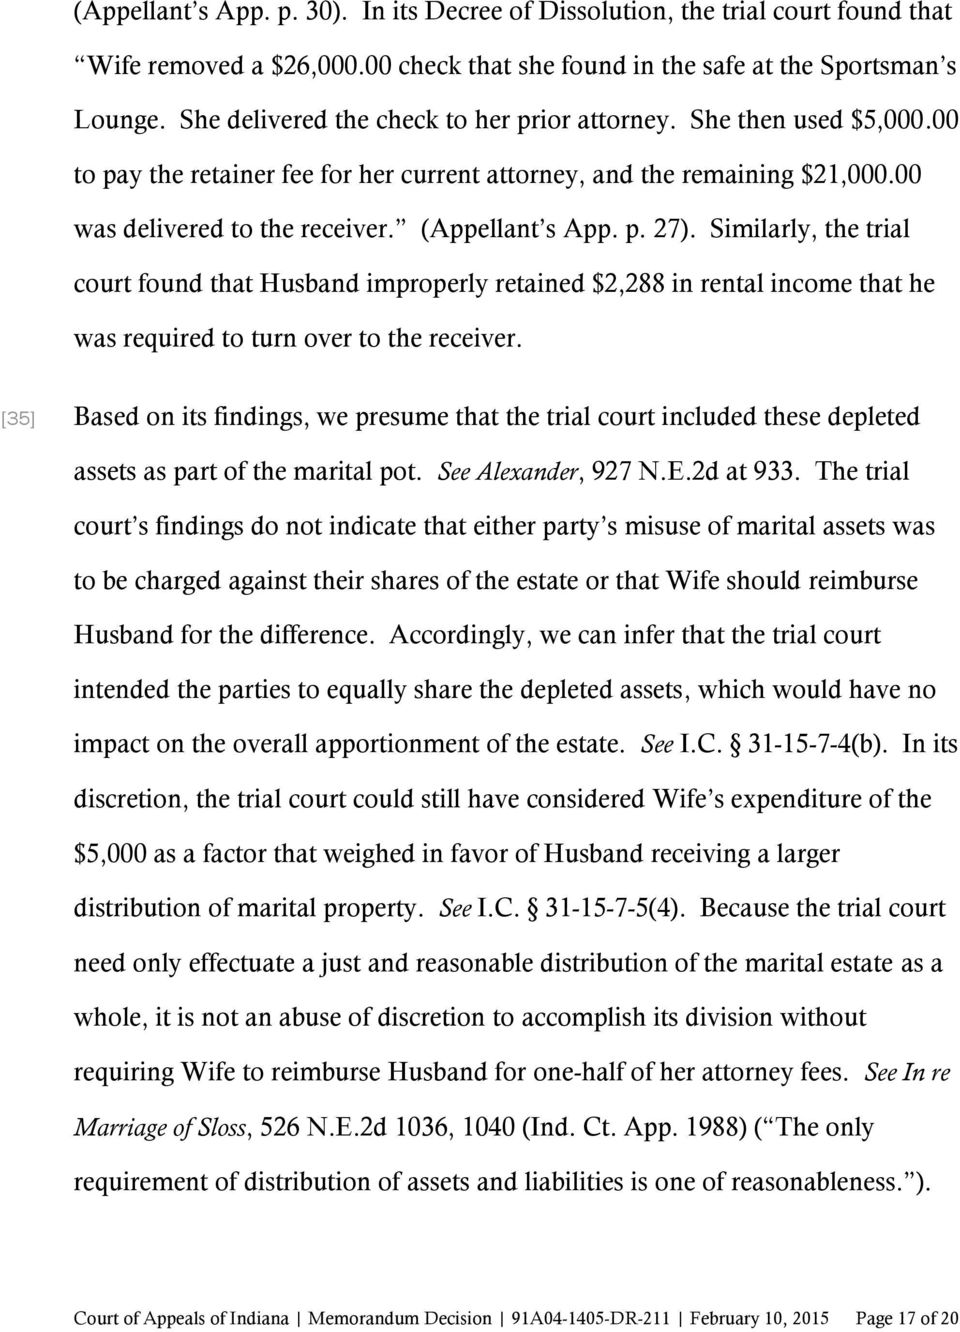 p. 27). Similarly, the trial court found that Husband improperly retained $2,288 in rental income that he was required to turn over to the receiver.